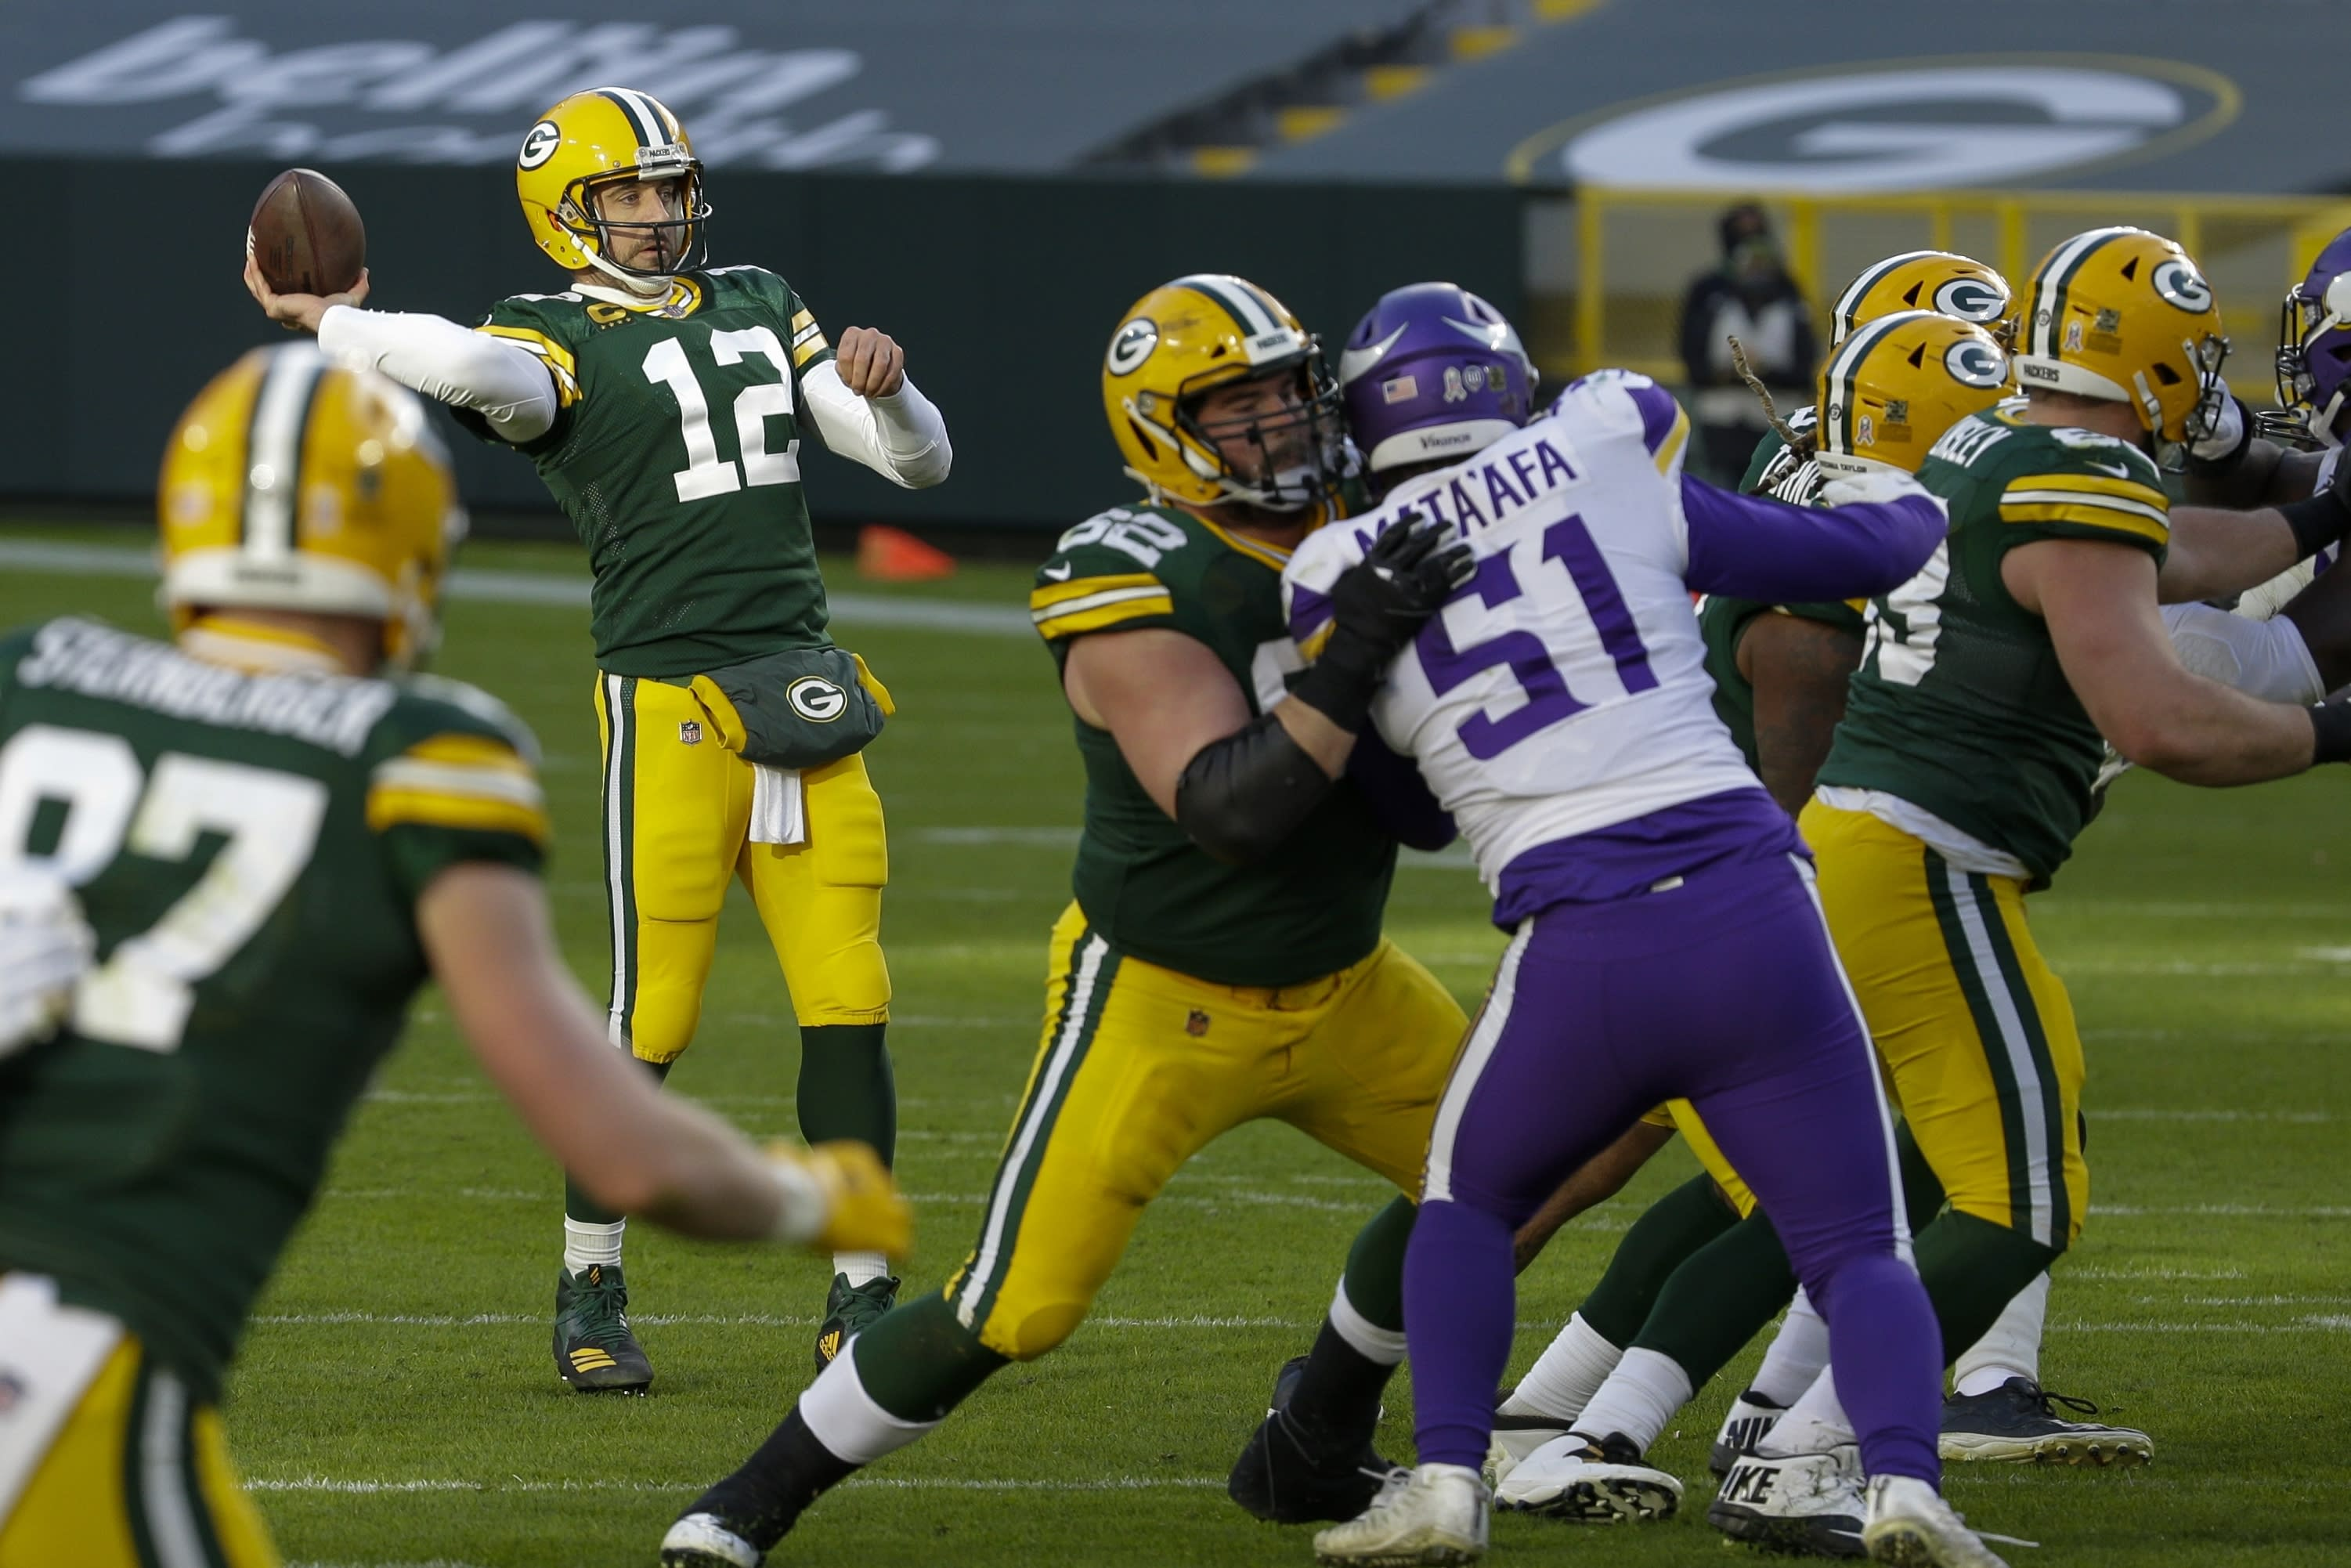 Packers may have to face 49ers without top 3 running backs